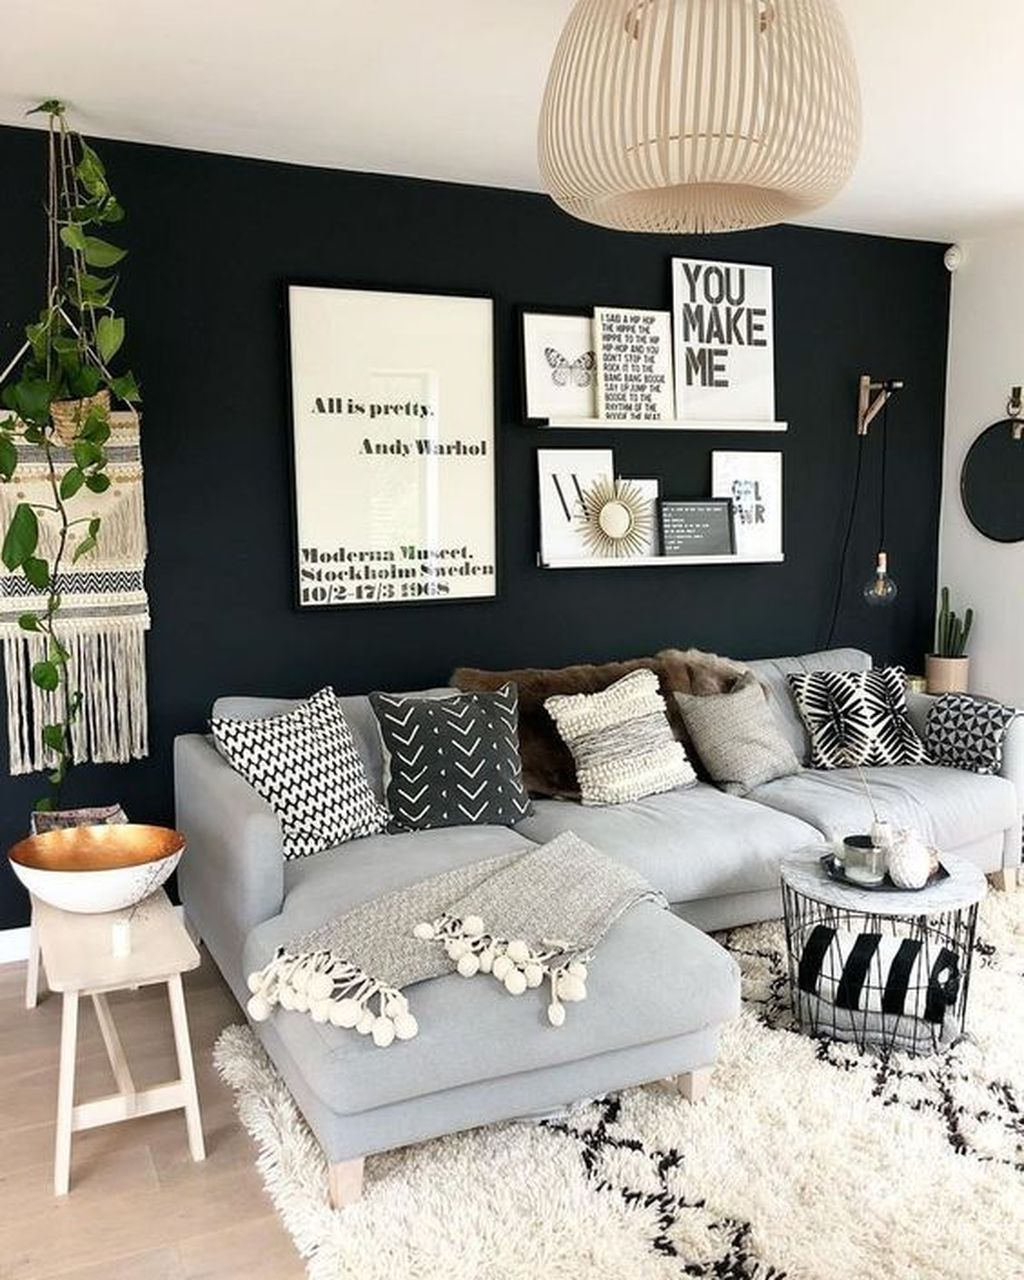 35 Unique Small Apartment Decorating Ideas On A Budget